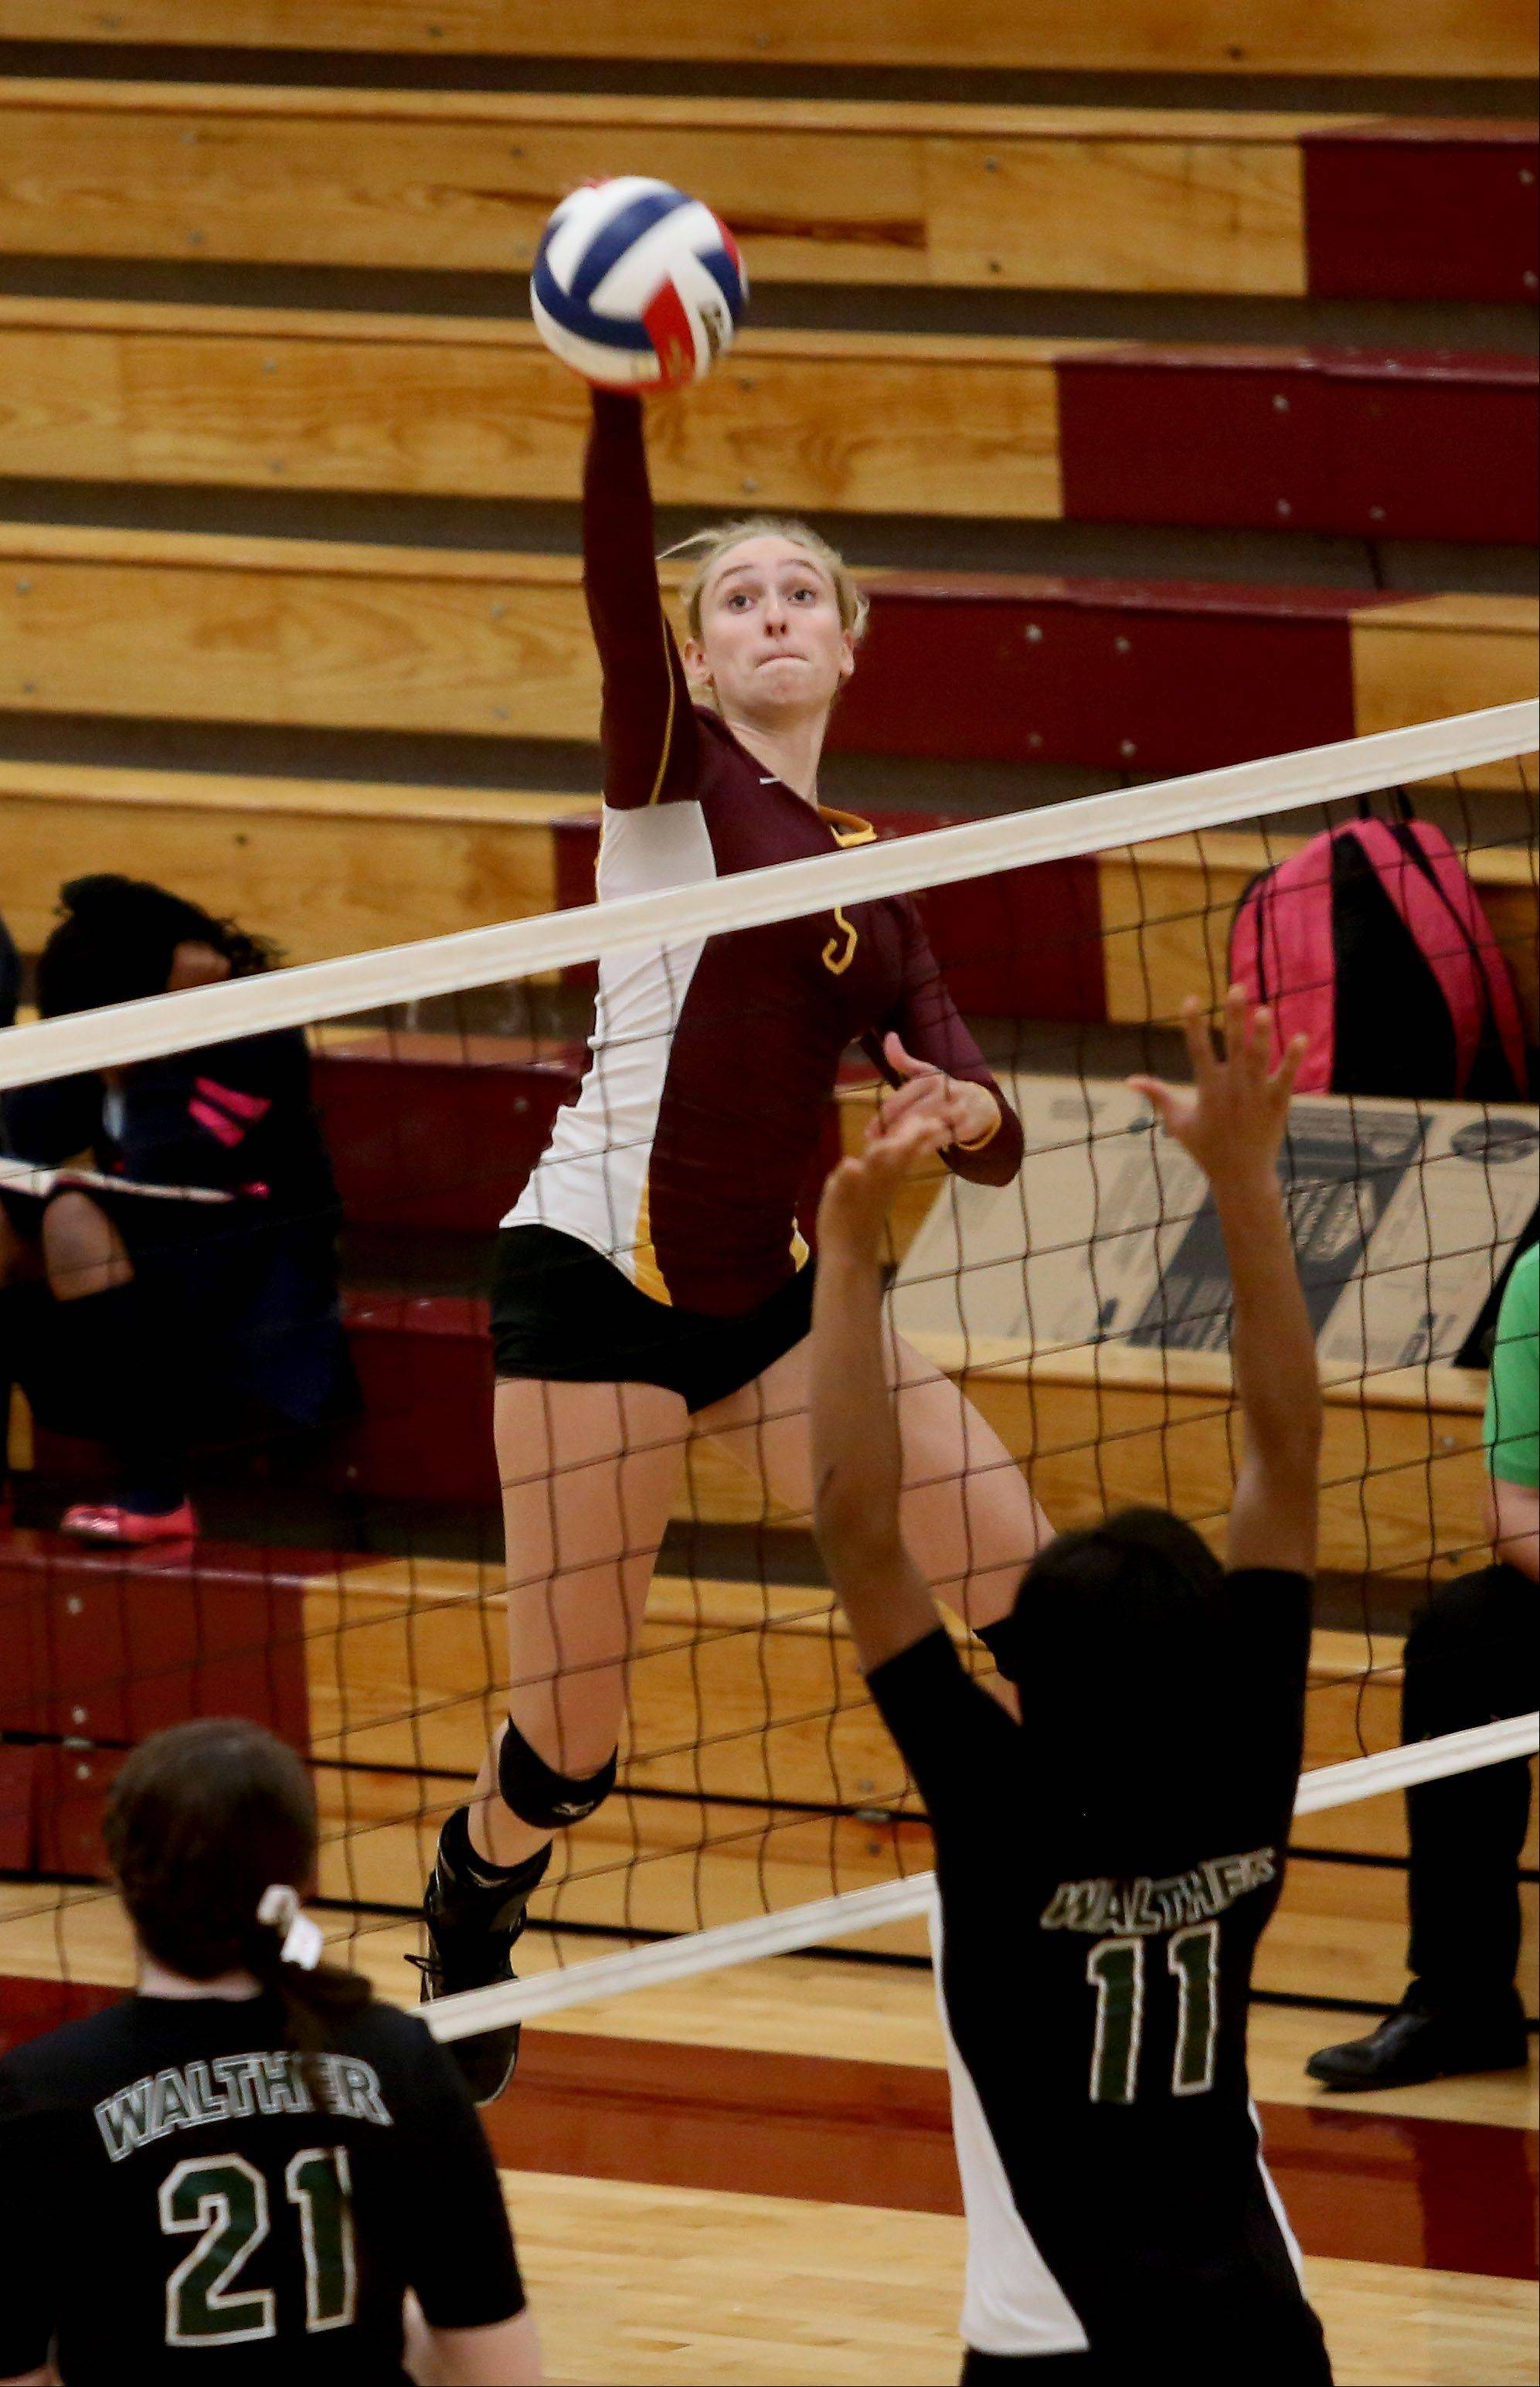 Jennifer Marten of Montini goes up to spike the ball in action against Walther Christian during girls volleyball on Monday in Lombard.